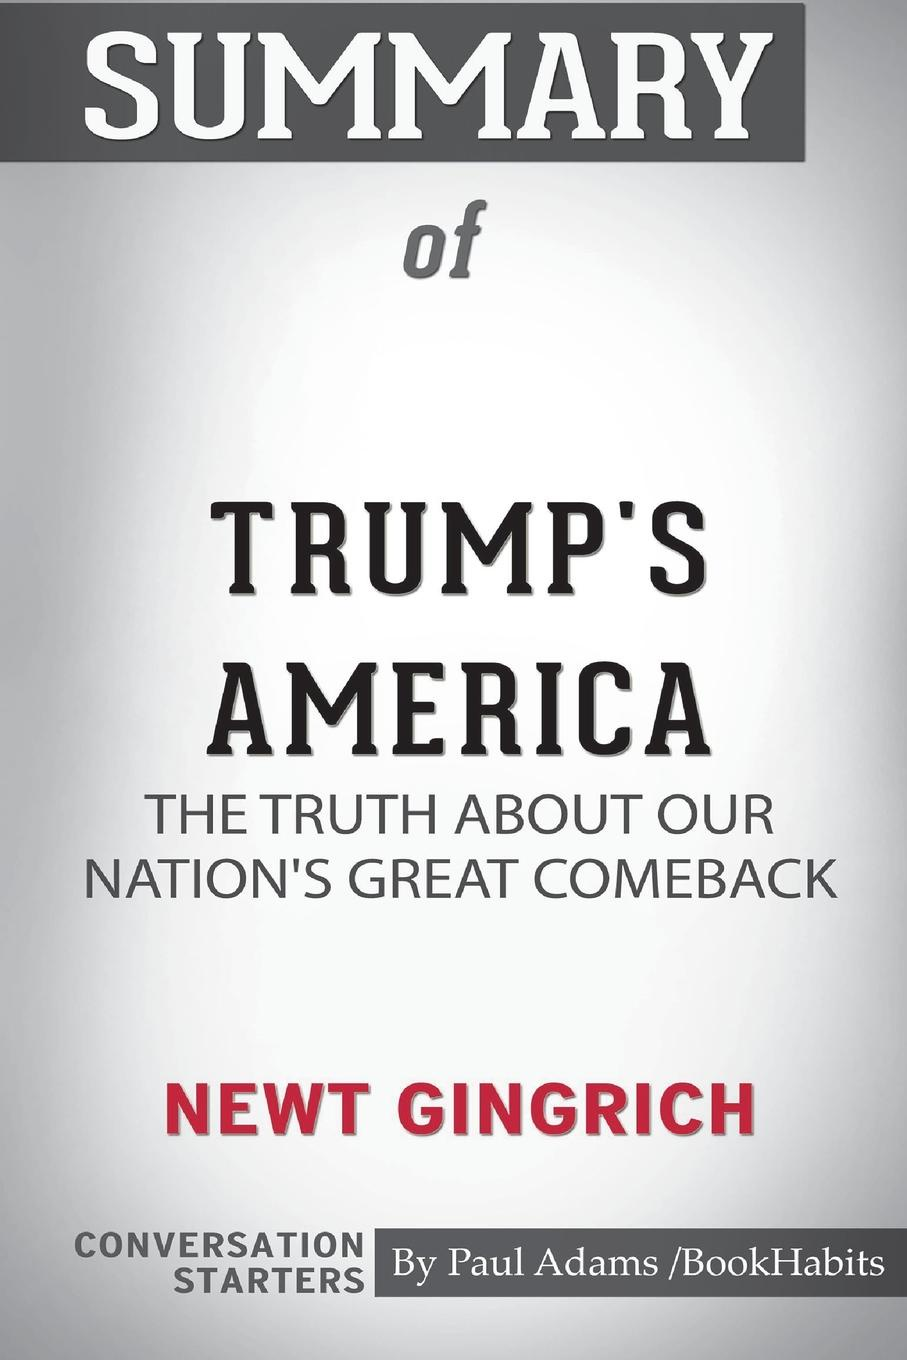 Paul Adams / BookHabits Summary of Trumps America by Newt Gingrich. Conversation Starters